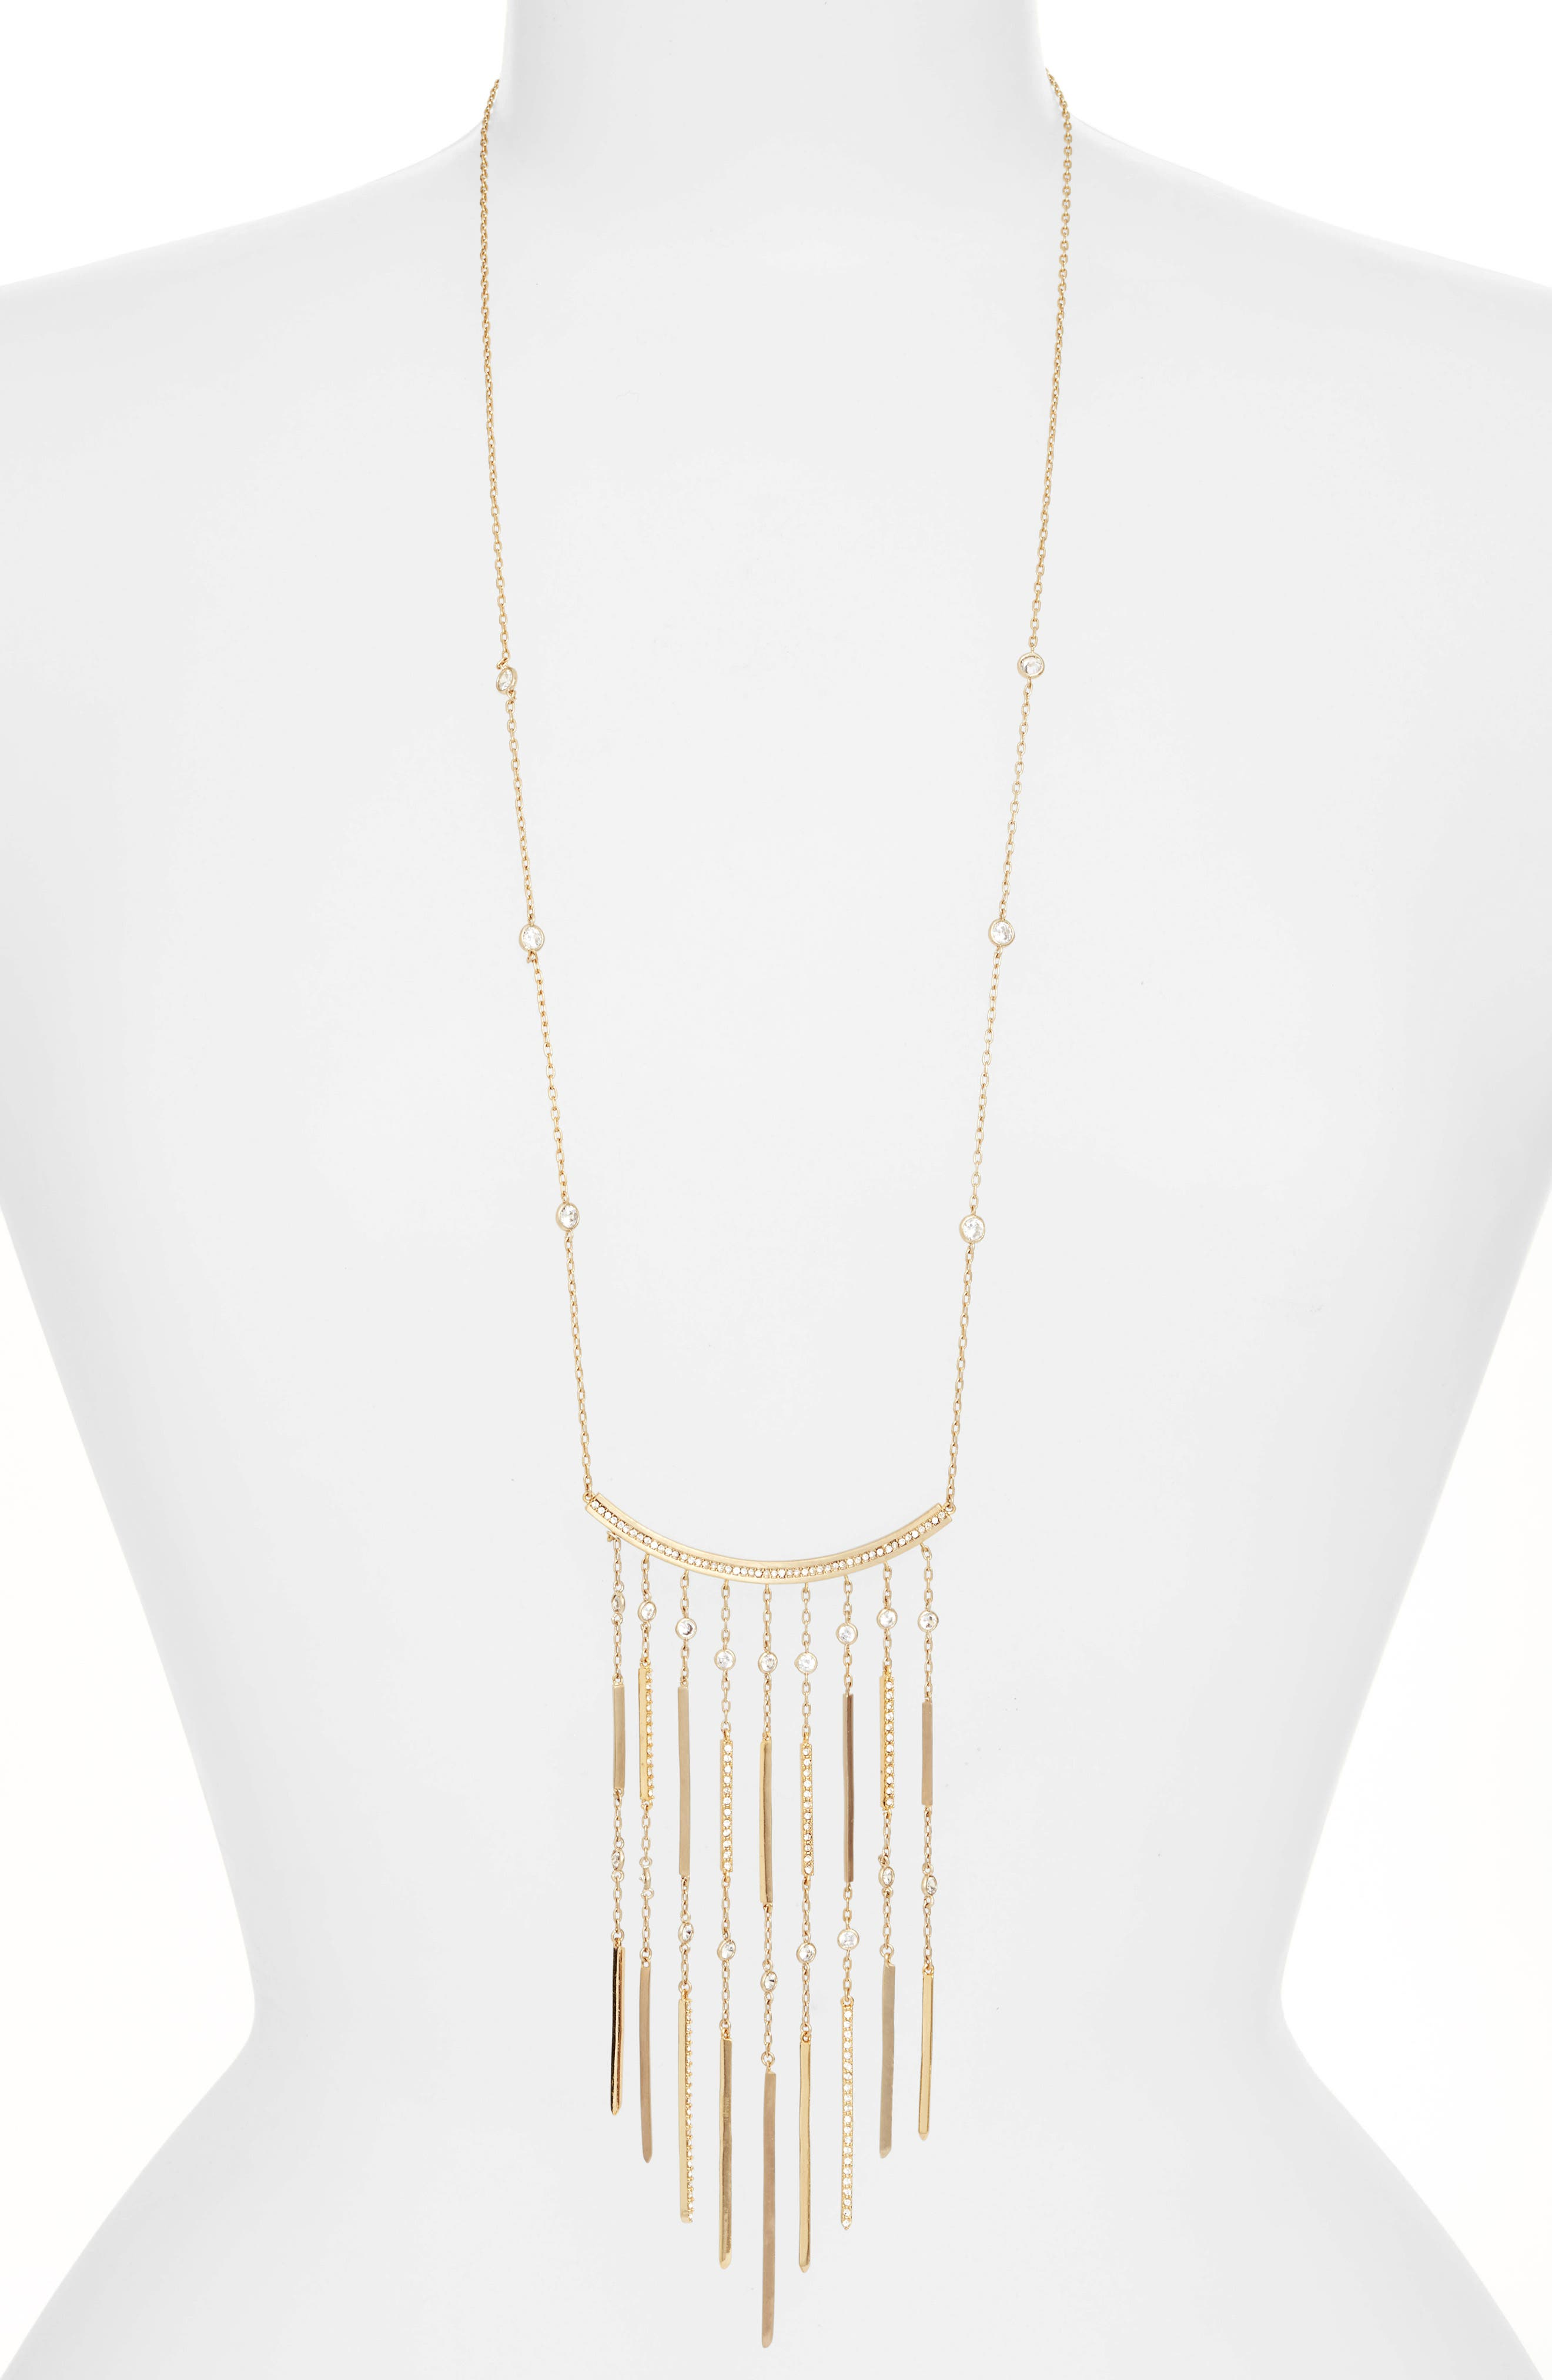 Jenny Packham Fringe Pendant Necklace